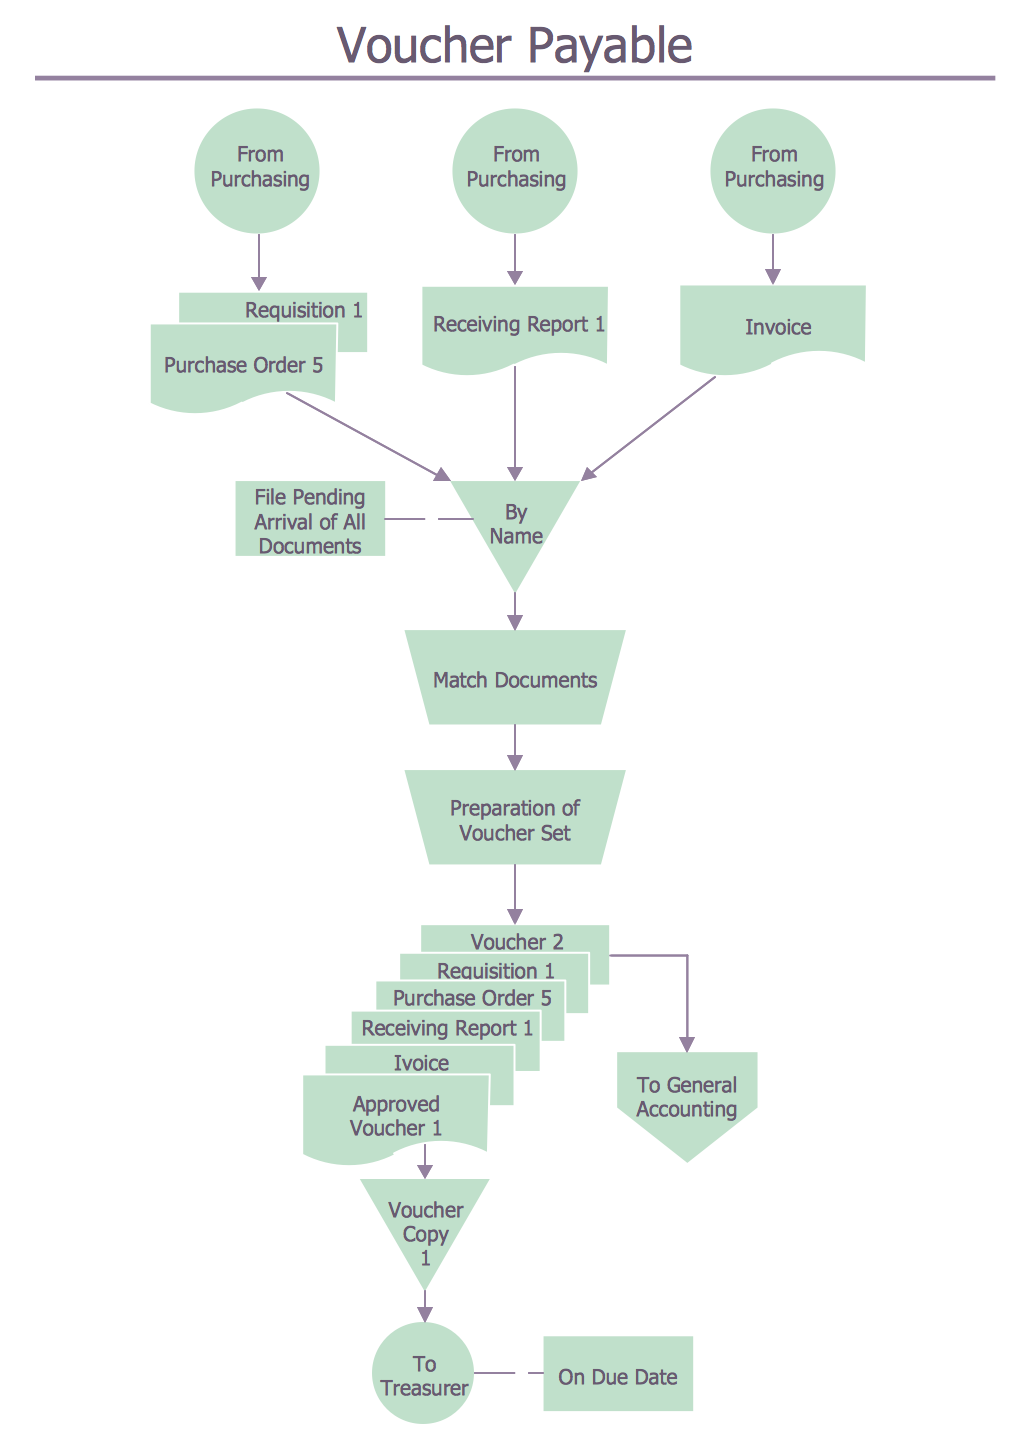 Flowchart for Voucher Payable